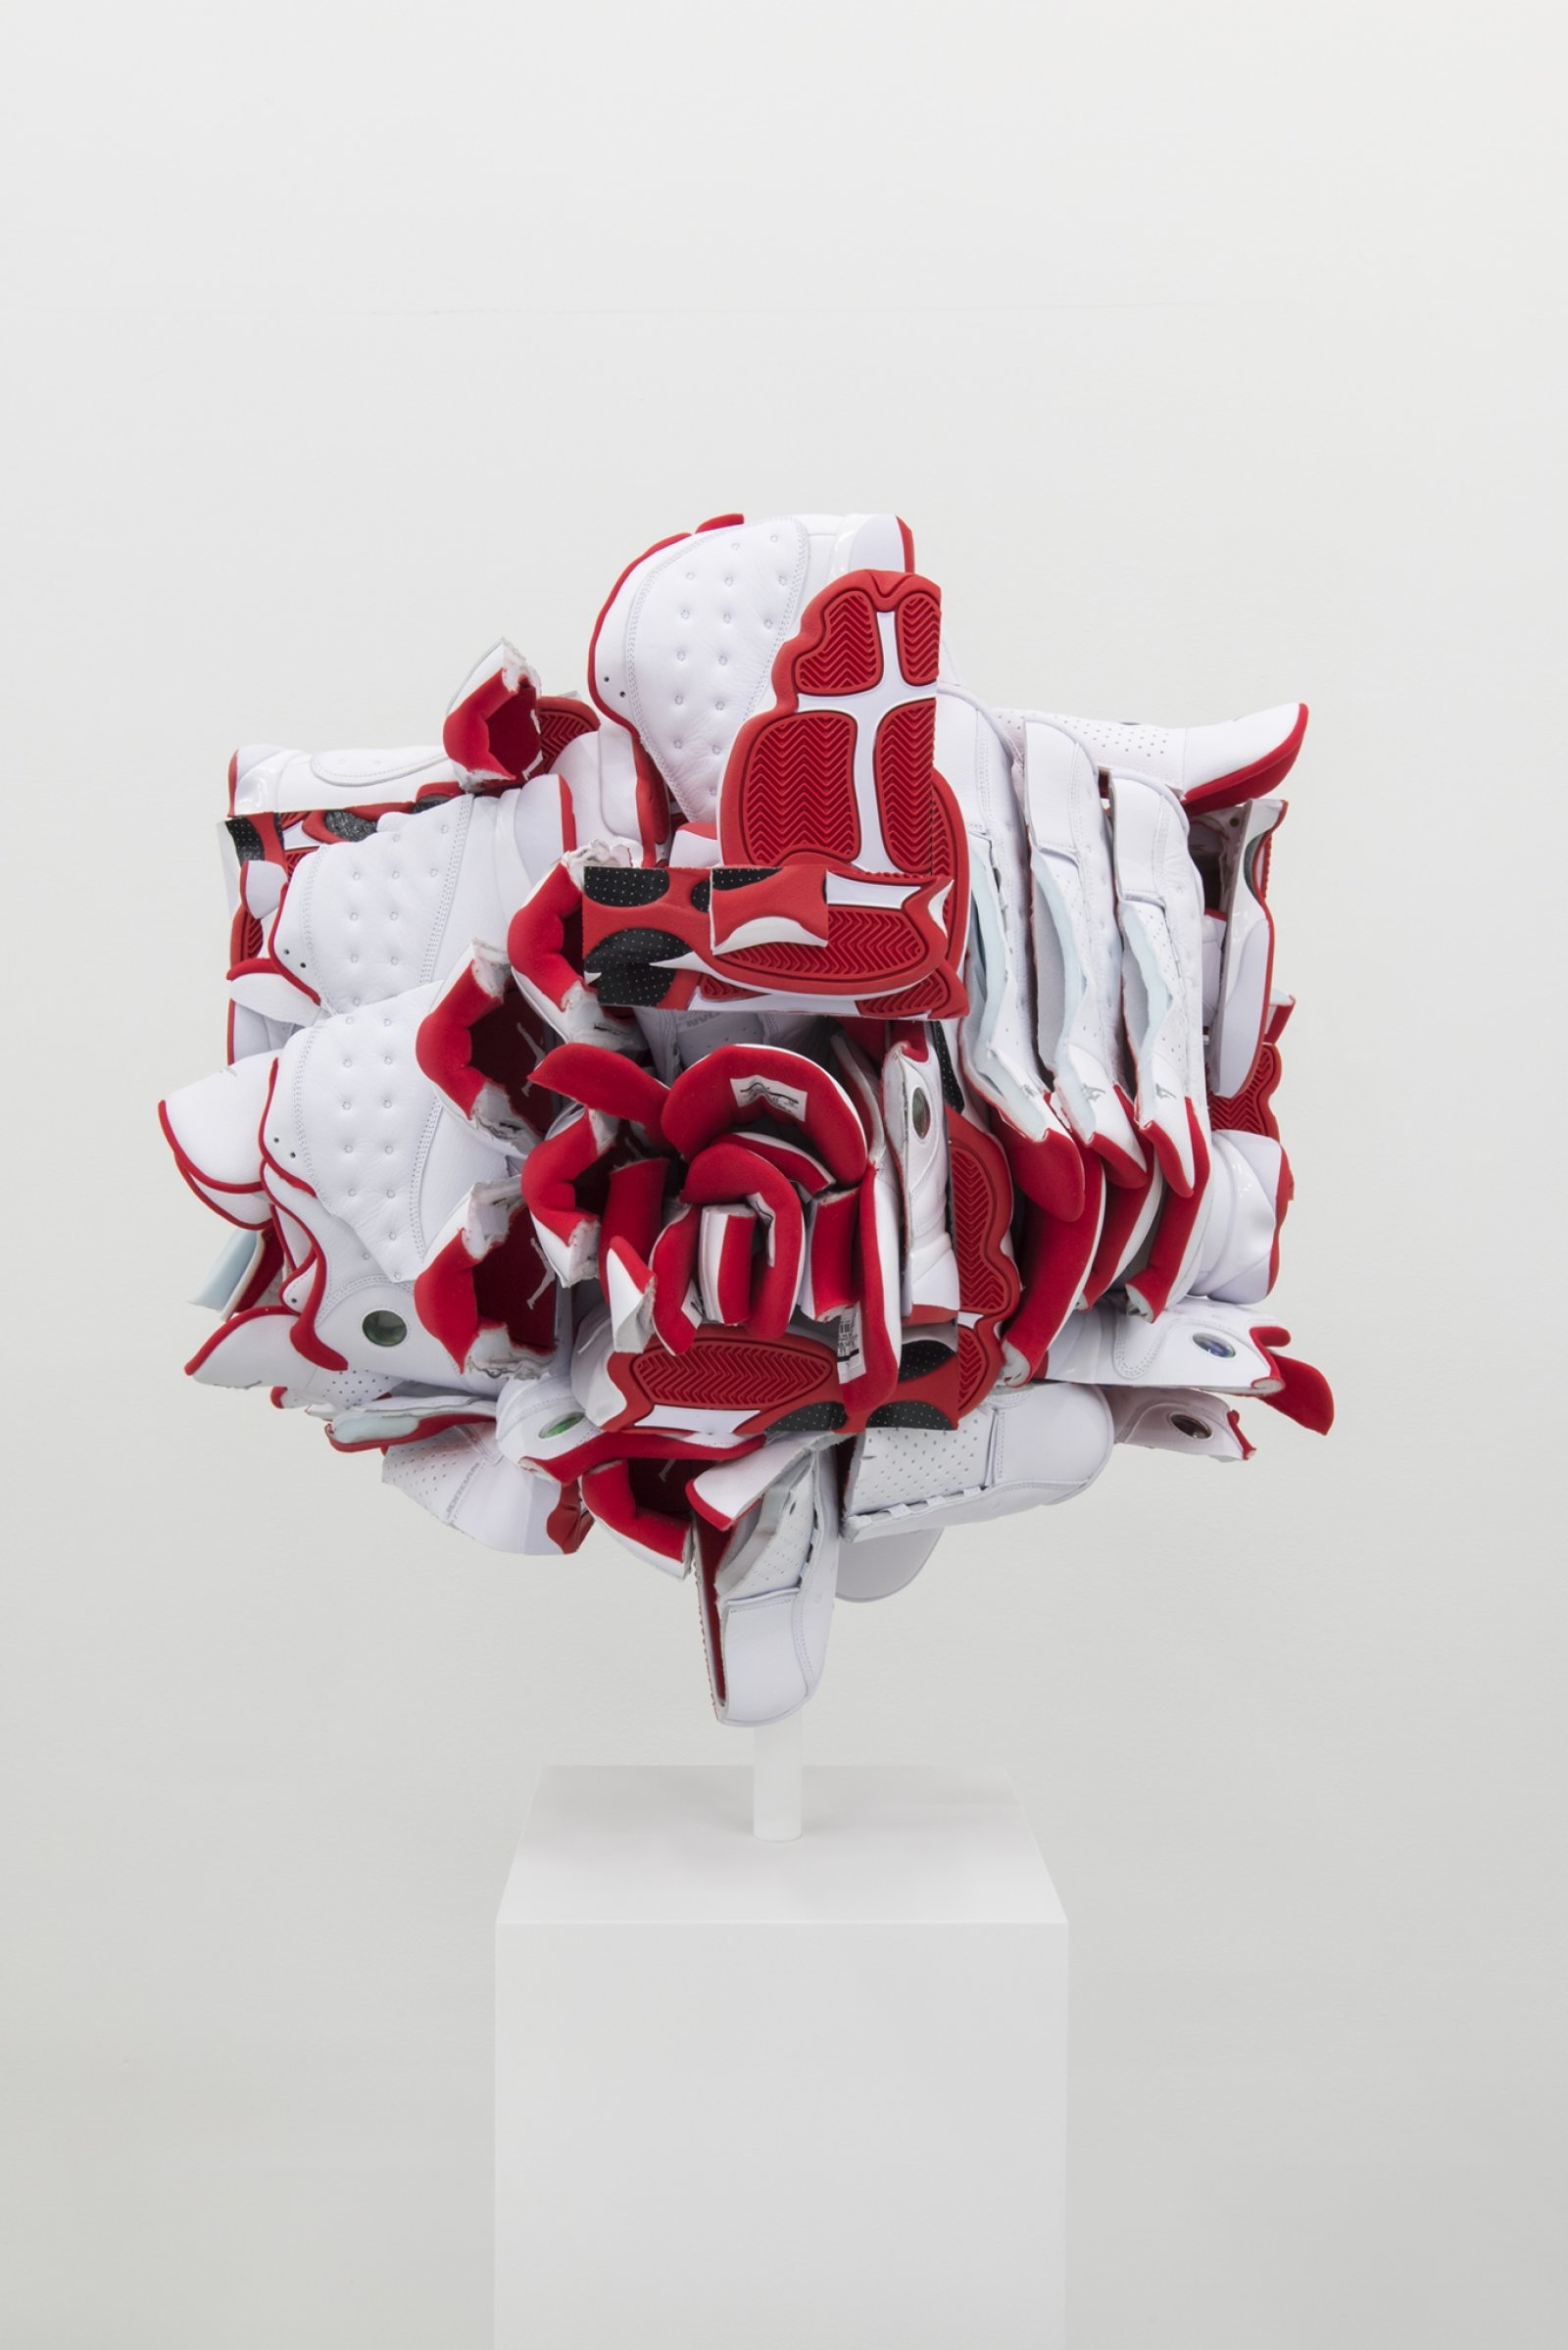 brian jungen  supersize the light in all directions 2